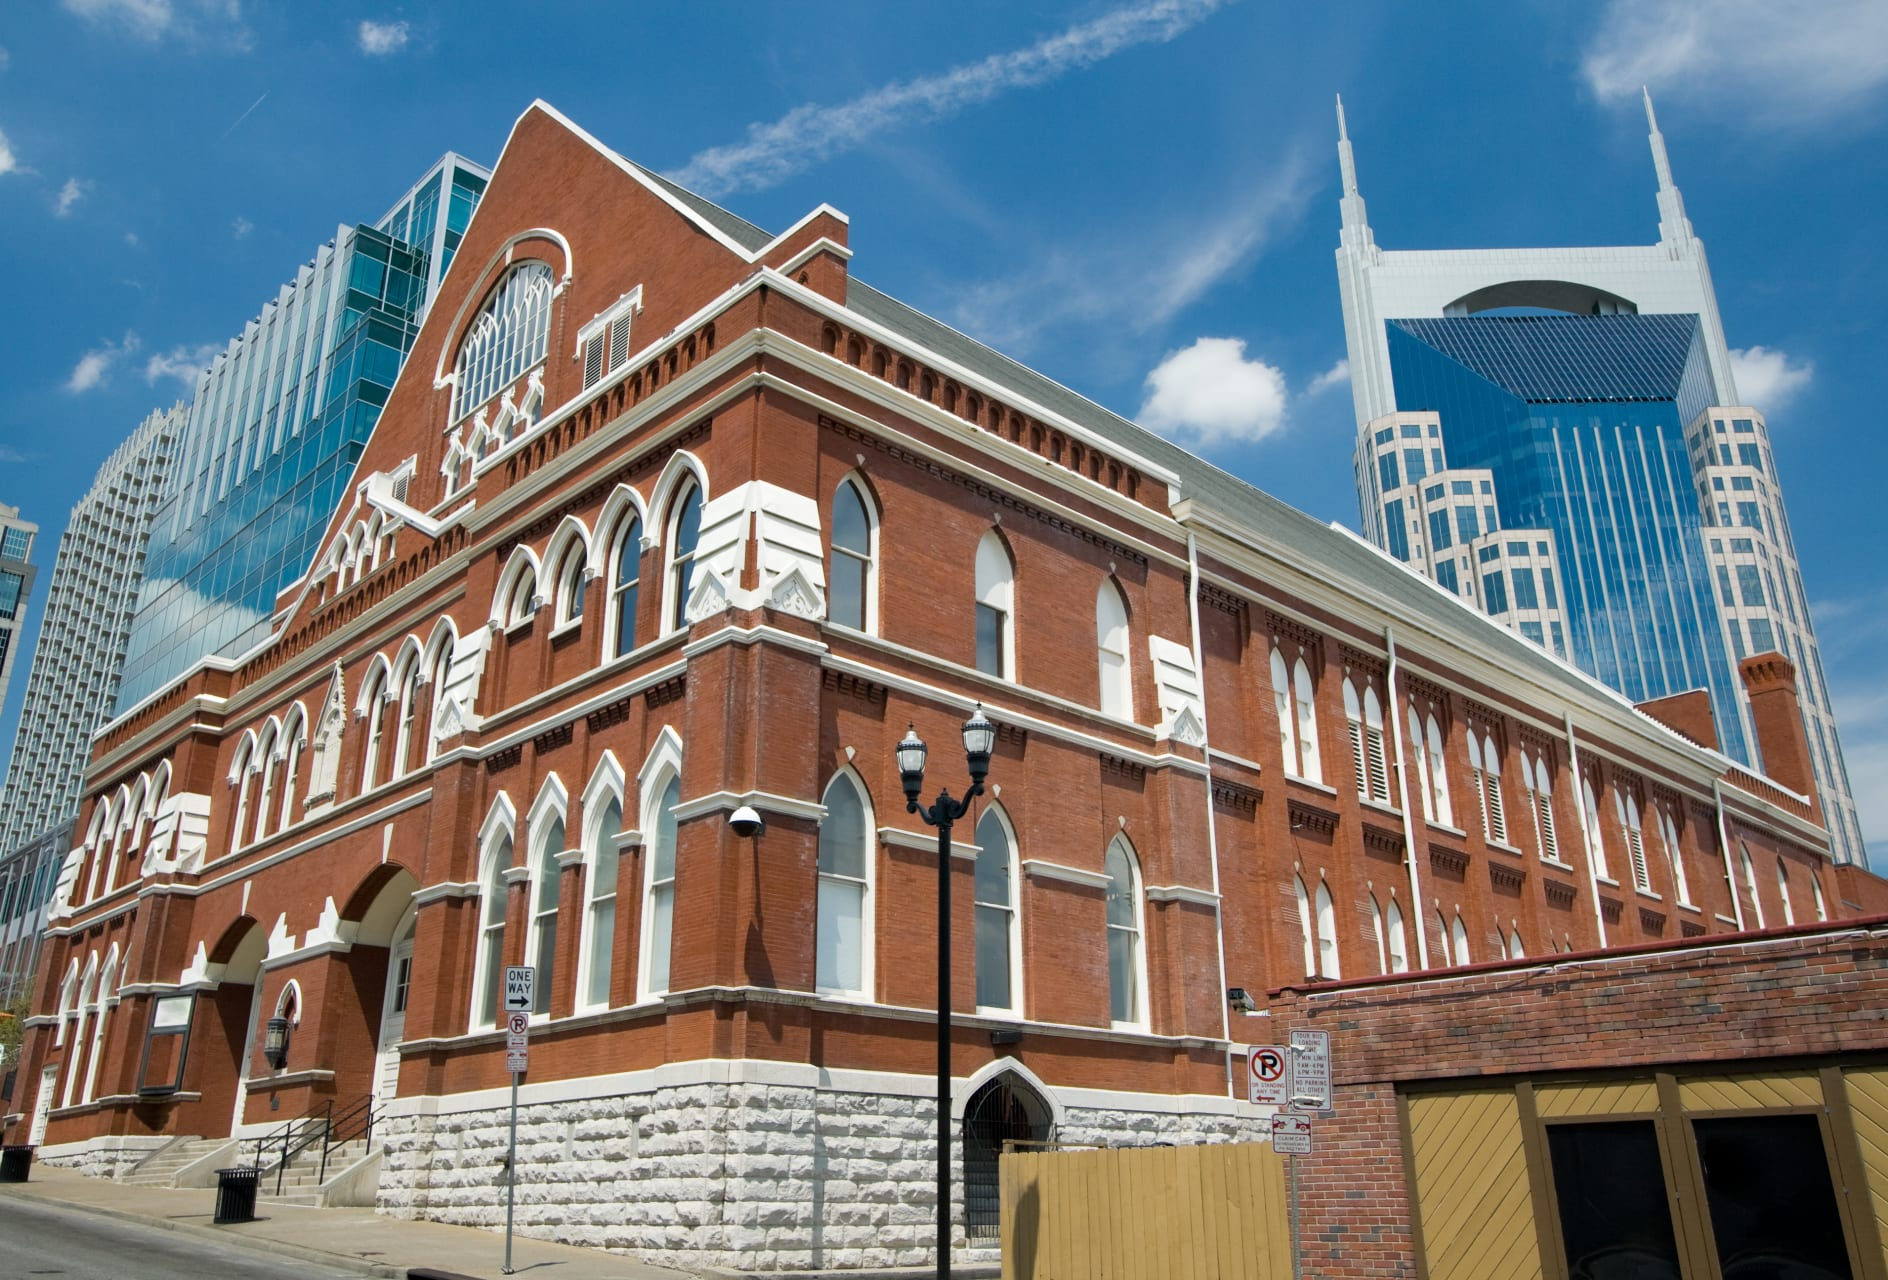 Nashville - Country Music and American History in Downtown Nashville